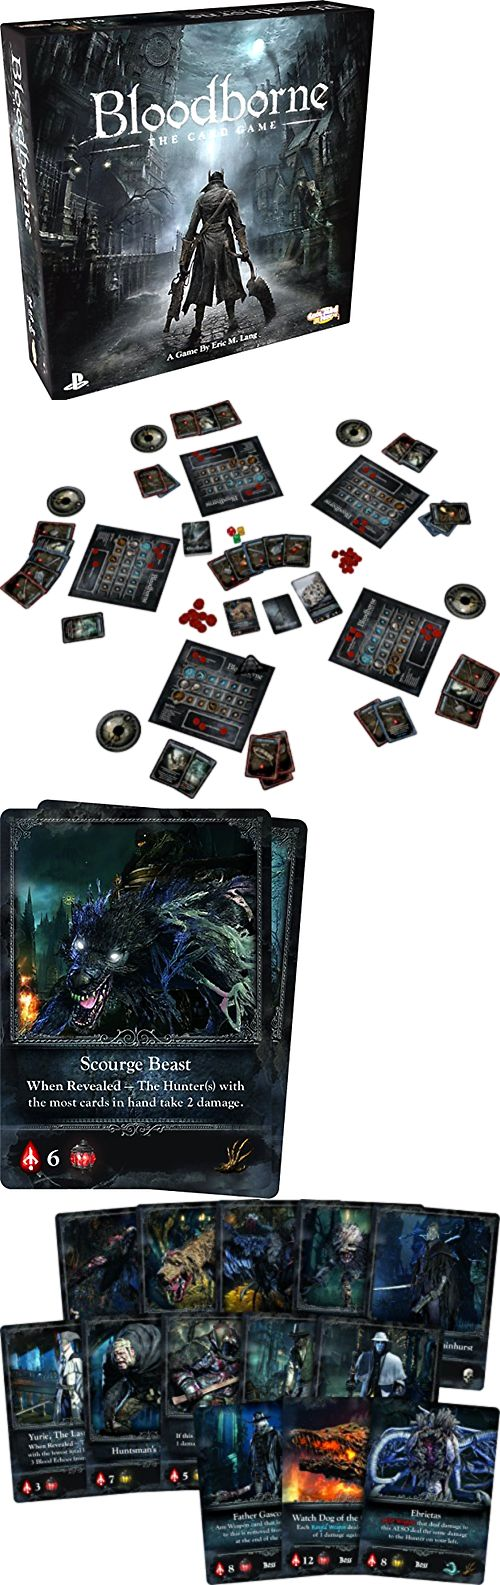 Other Card Games and Poker 2552: Contemporary Games Bloodborne The Card Game Blood Borne Video Game Inspired -> BUY IT NOW ONLY: $36.67 on eBay!